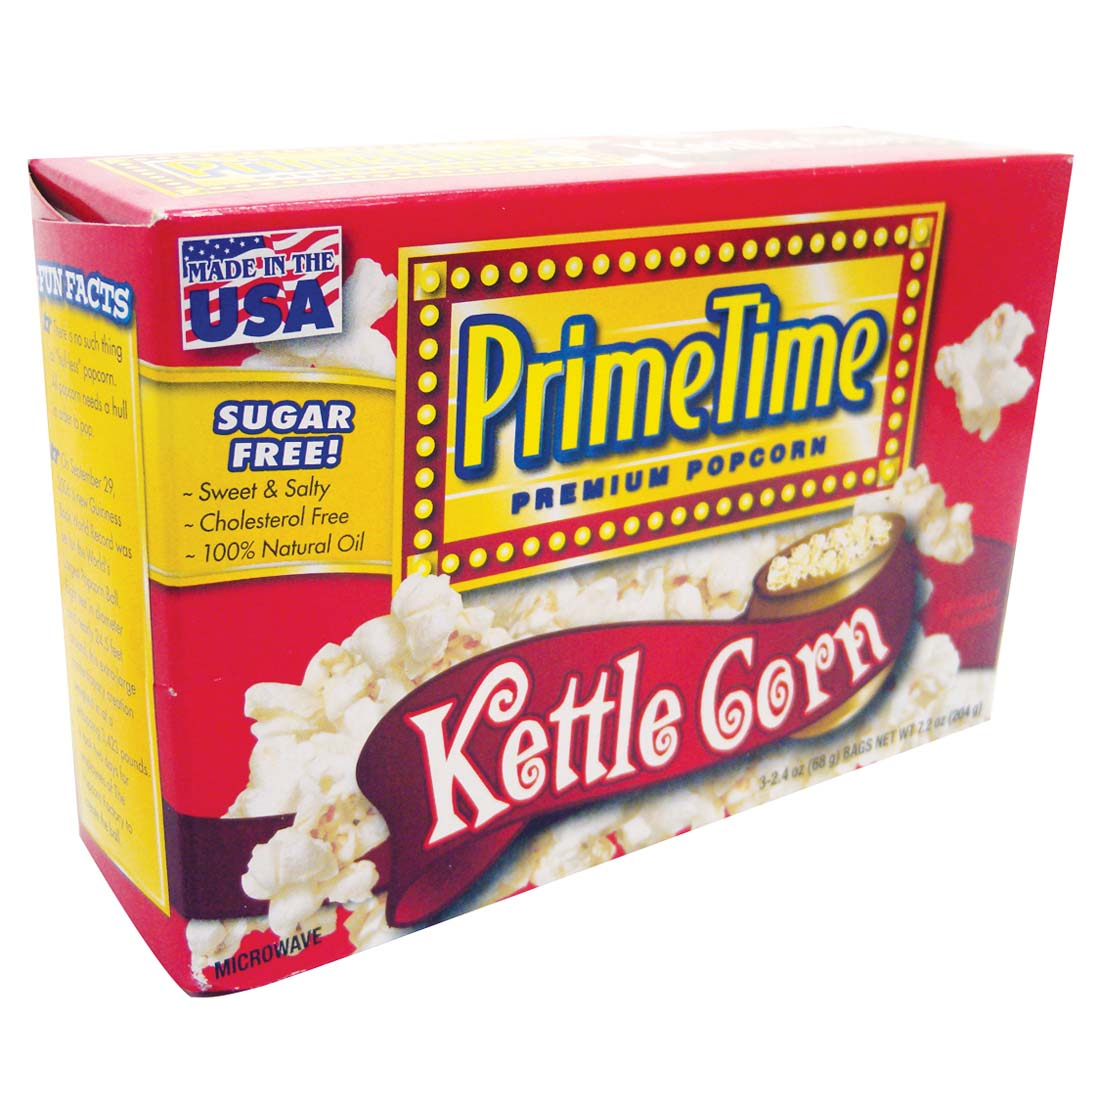 View PRIME TIME MICROWAVE POPCORN 3 PK 2.4 OZ EA. KETTLE CORN FLAVOR **MADE IN USA**